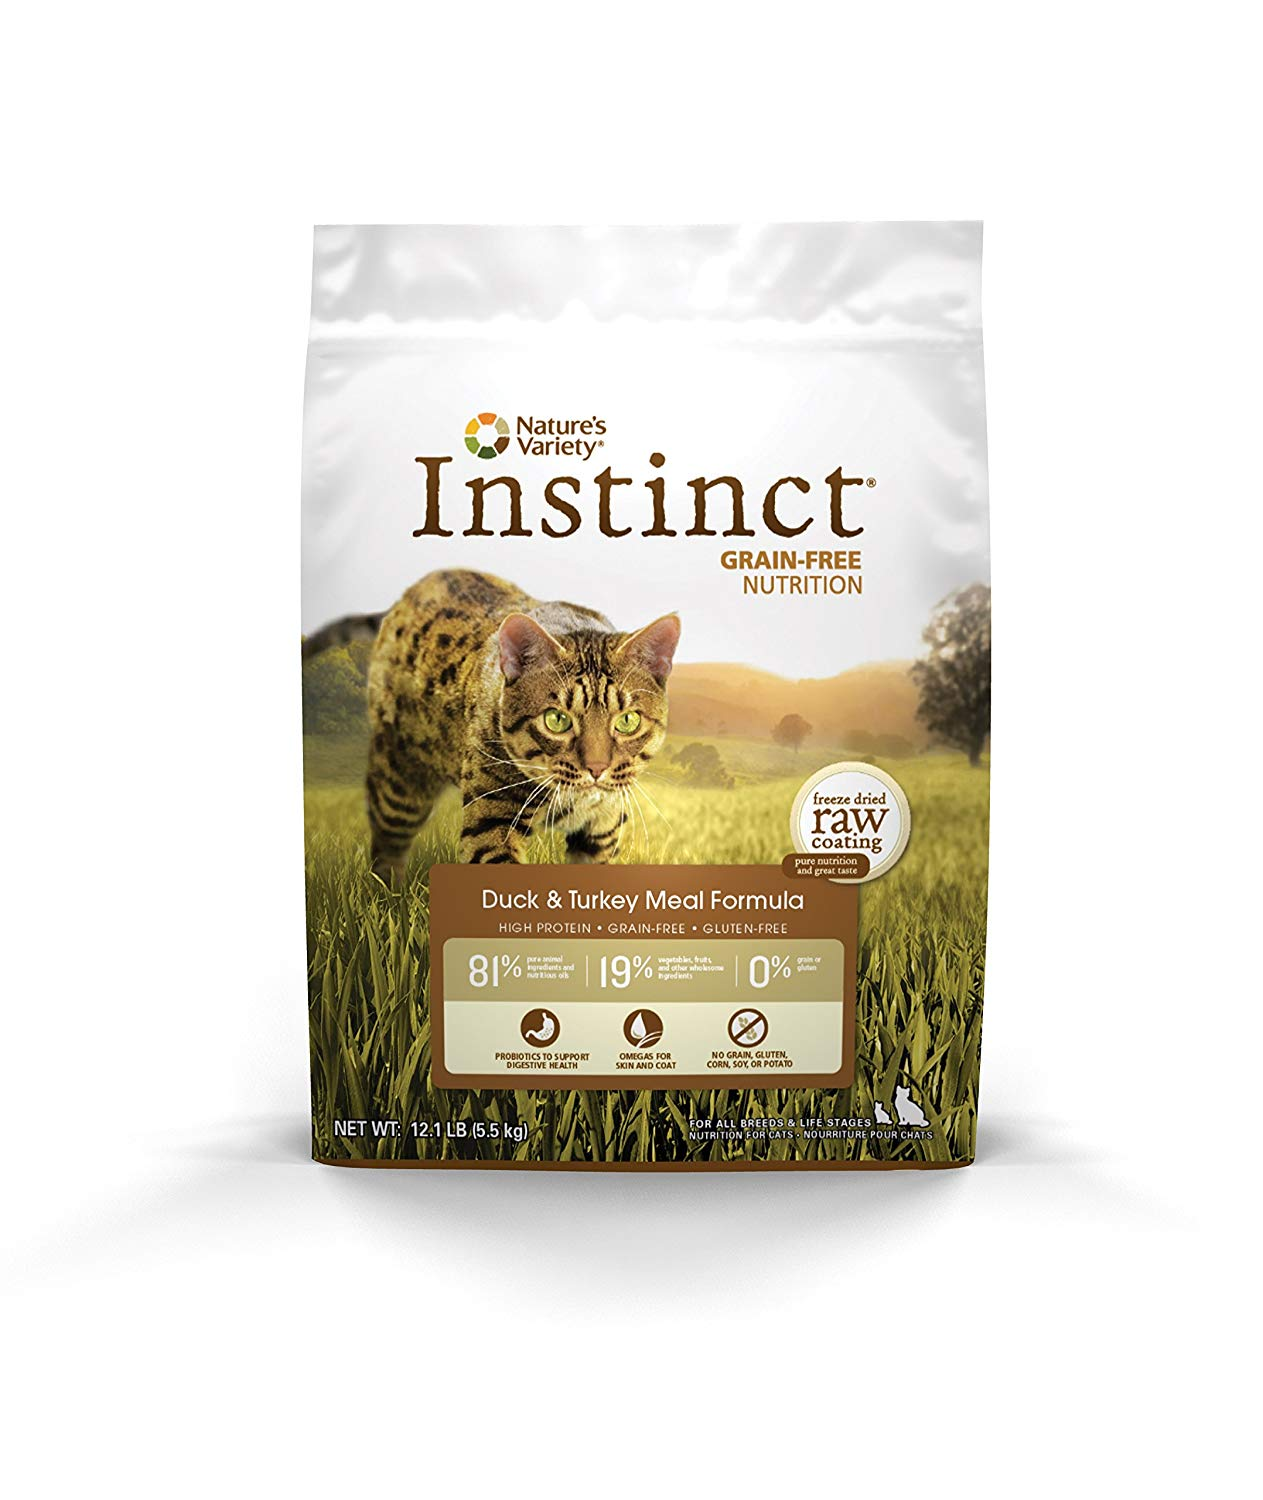 Instinct by Nature's Variety Grain-Free Duck & Turkey Meal Formula Dry Cat Food, 5.5-lb